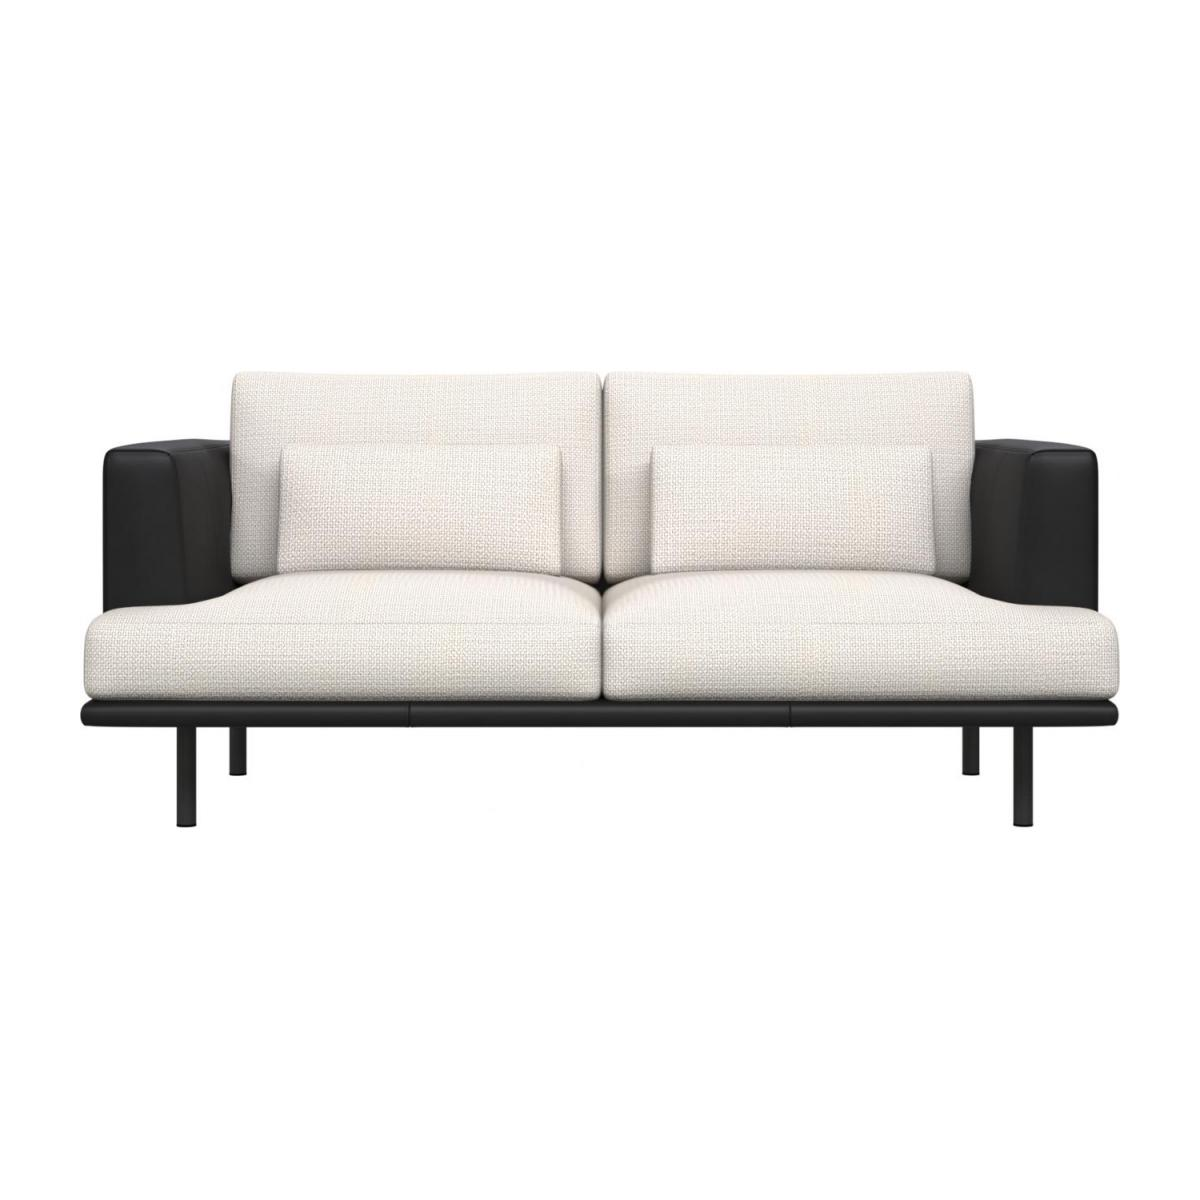 2 seater sofa in Fasoli fabric, snow white with base and armrests in black leather n°2